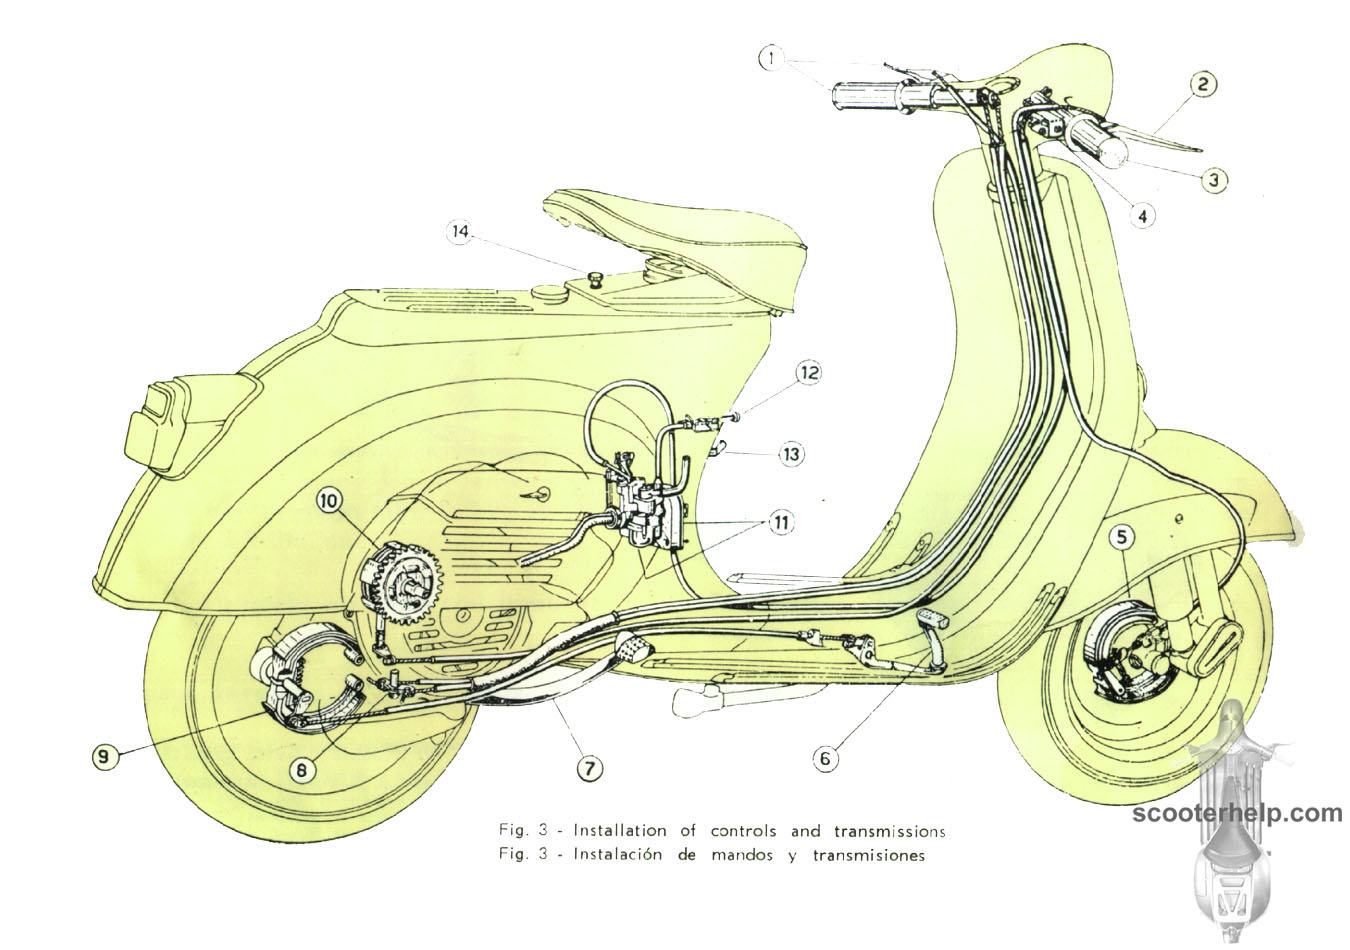 vespa scooter wiring diagram house wiring diagram symbols \u2022 geely scooter  wiring diagram lml scooter